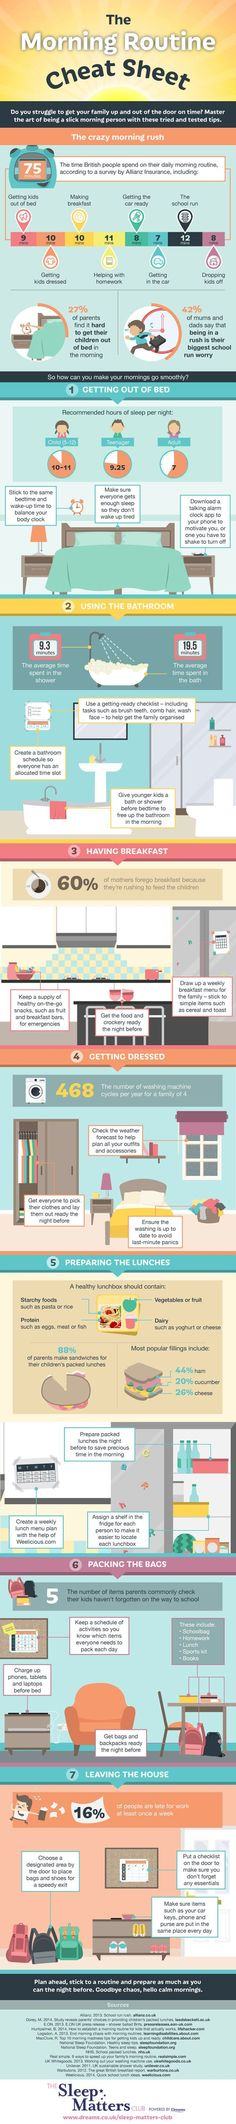 Use these tips to make the most of your mornings.